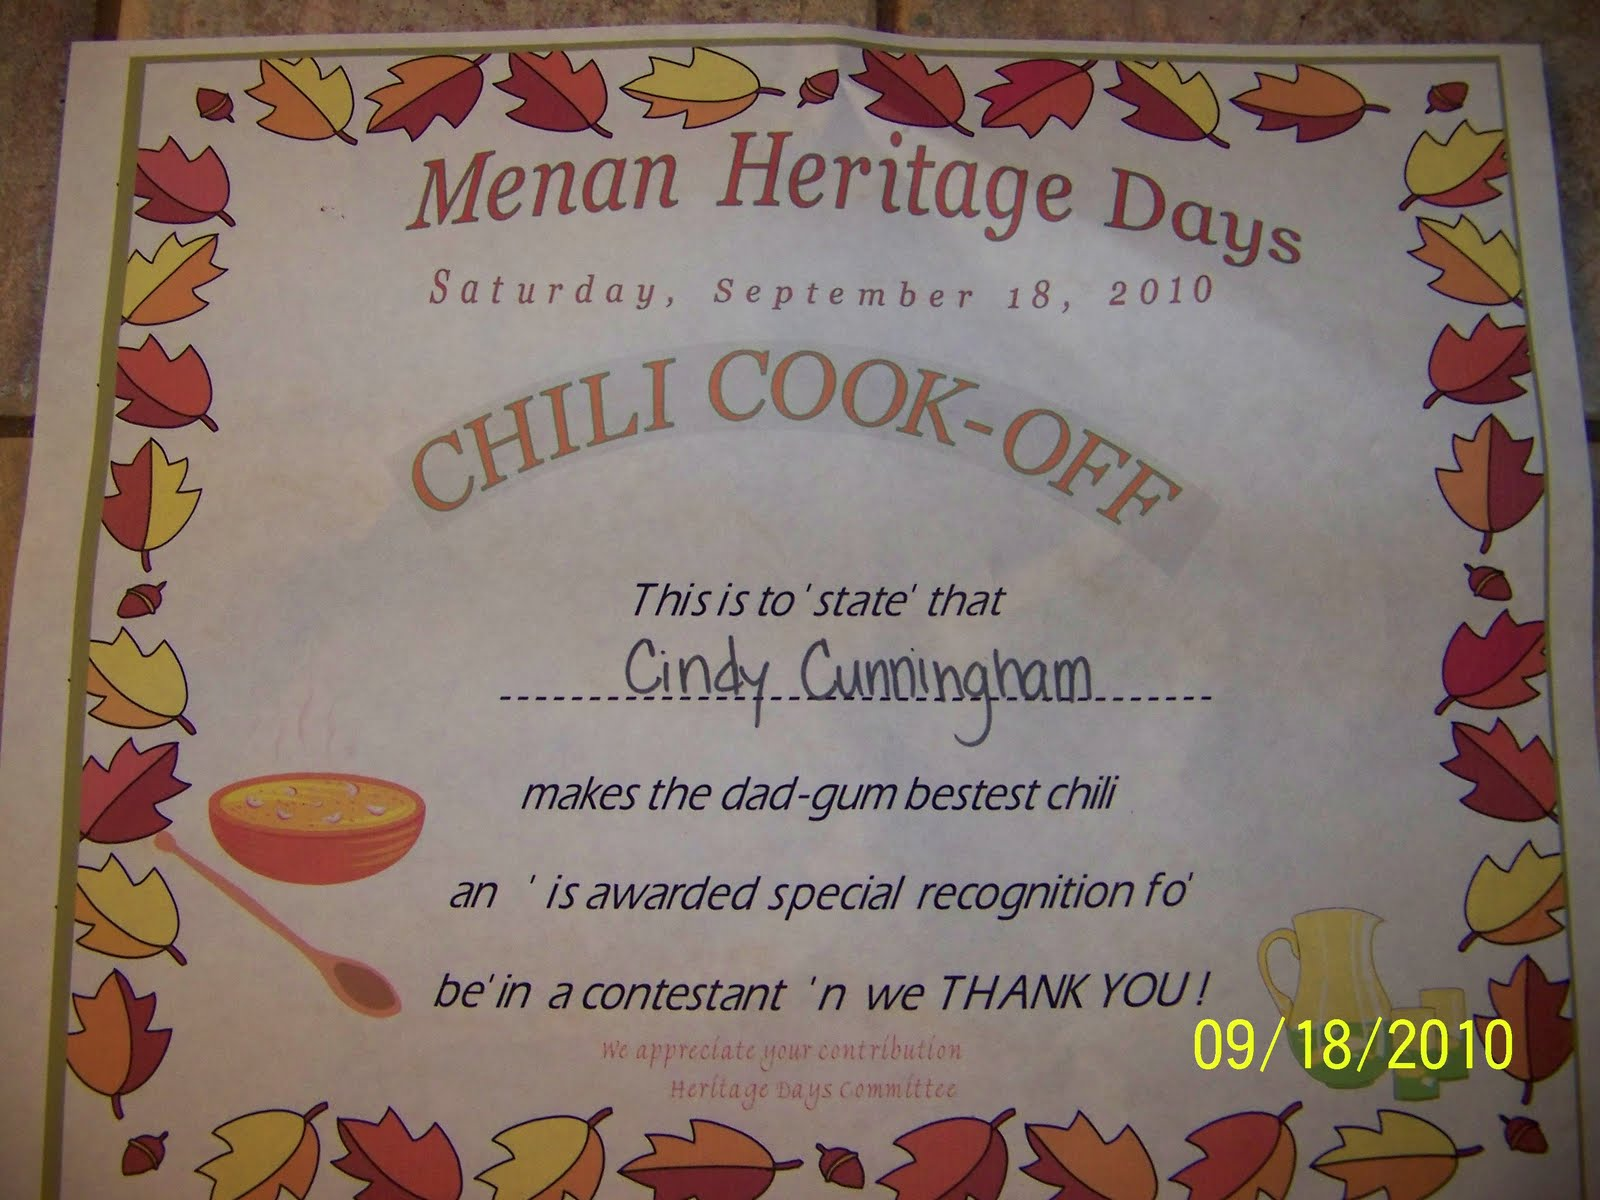 Casi chili cook off award certificate pictures to pin on for Chili cook off award certificate template